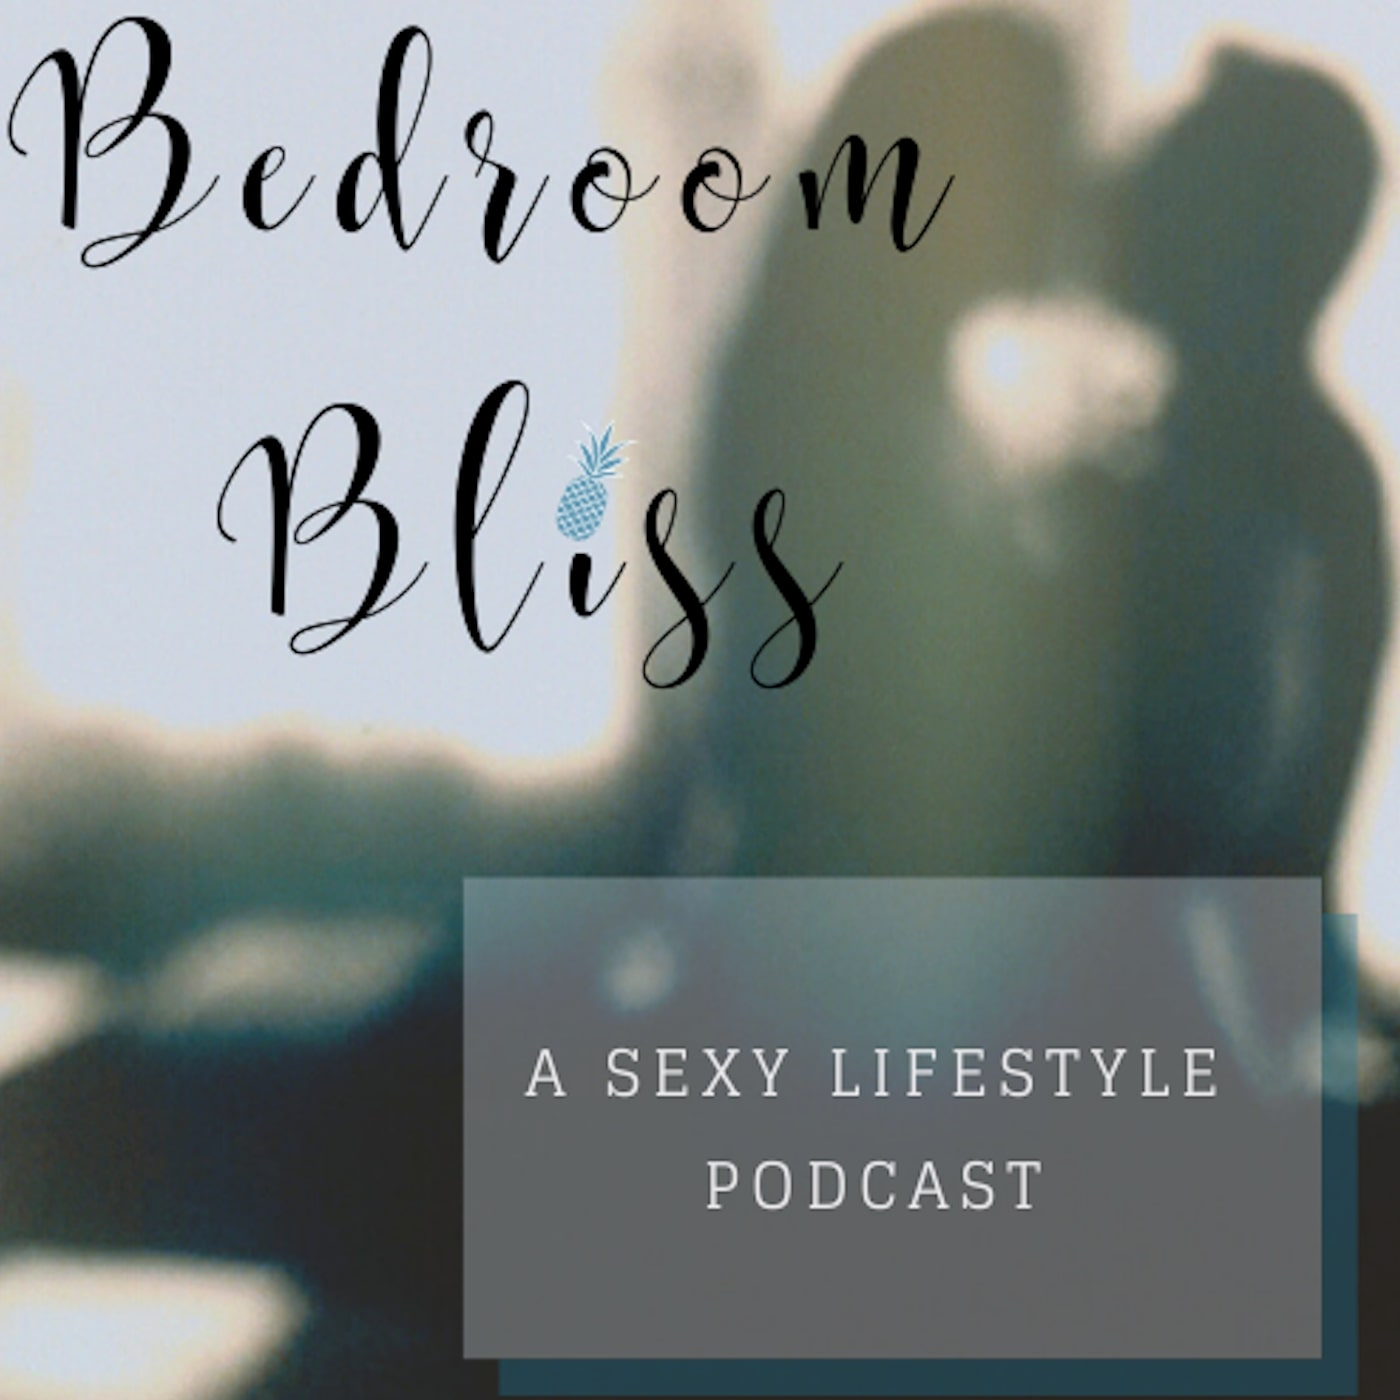 Bedroom Bliss Swinger Lifestyle Podcast.